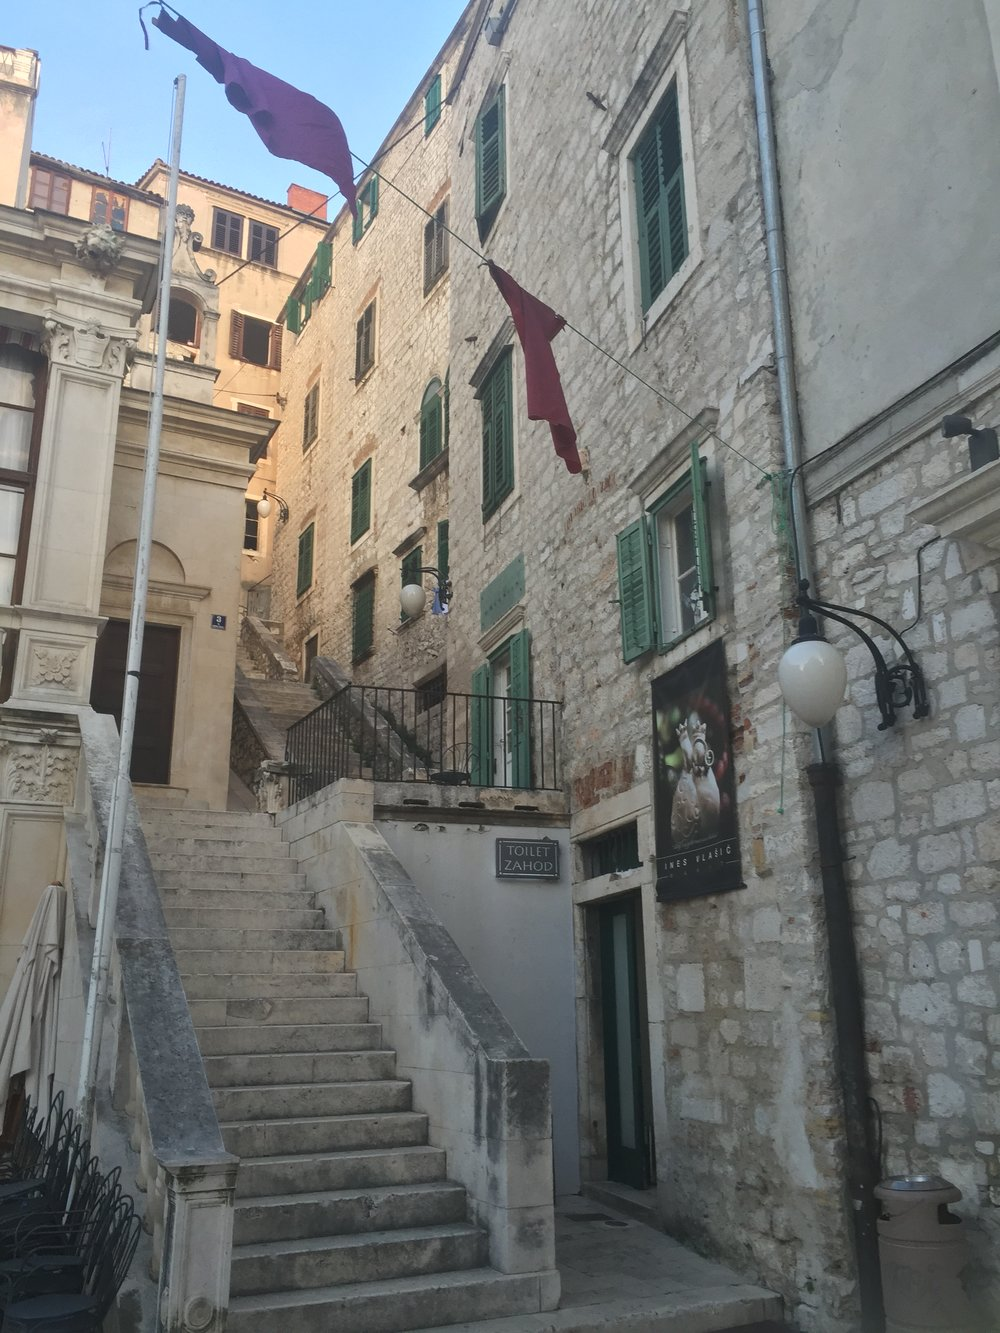 Stairway and atrium leading to the Palazzo Rossini located within walking distance of the city piazza and central square.